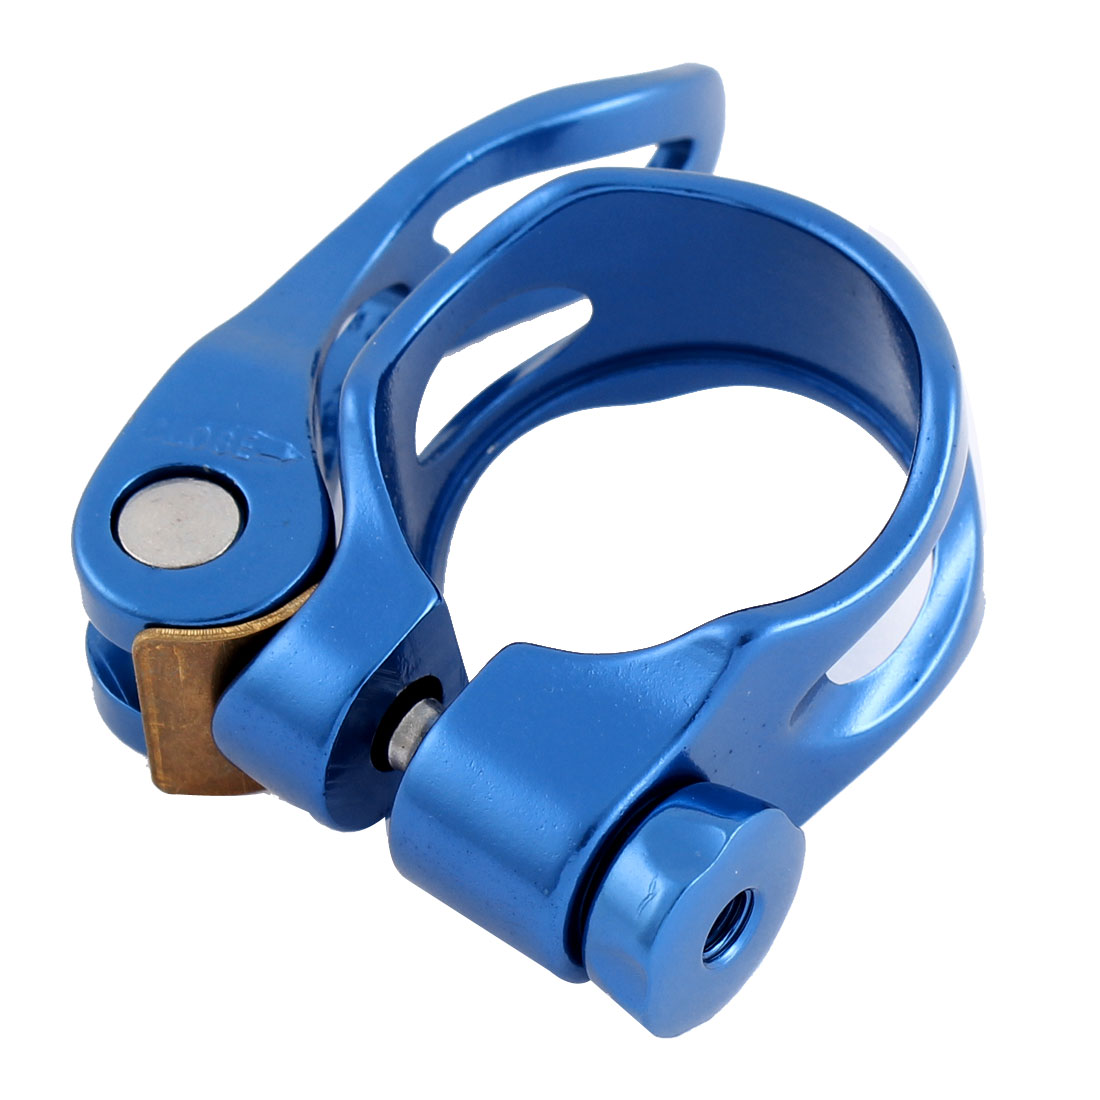 Quick Release Mountain Road Bike Seat Post Clamp 31.8mm Authorized by LF Blue